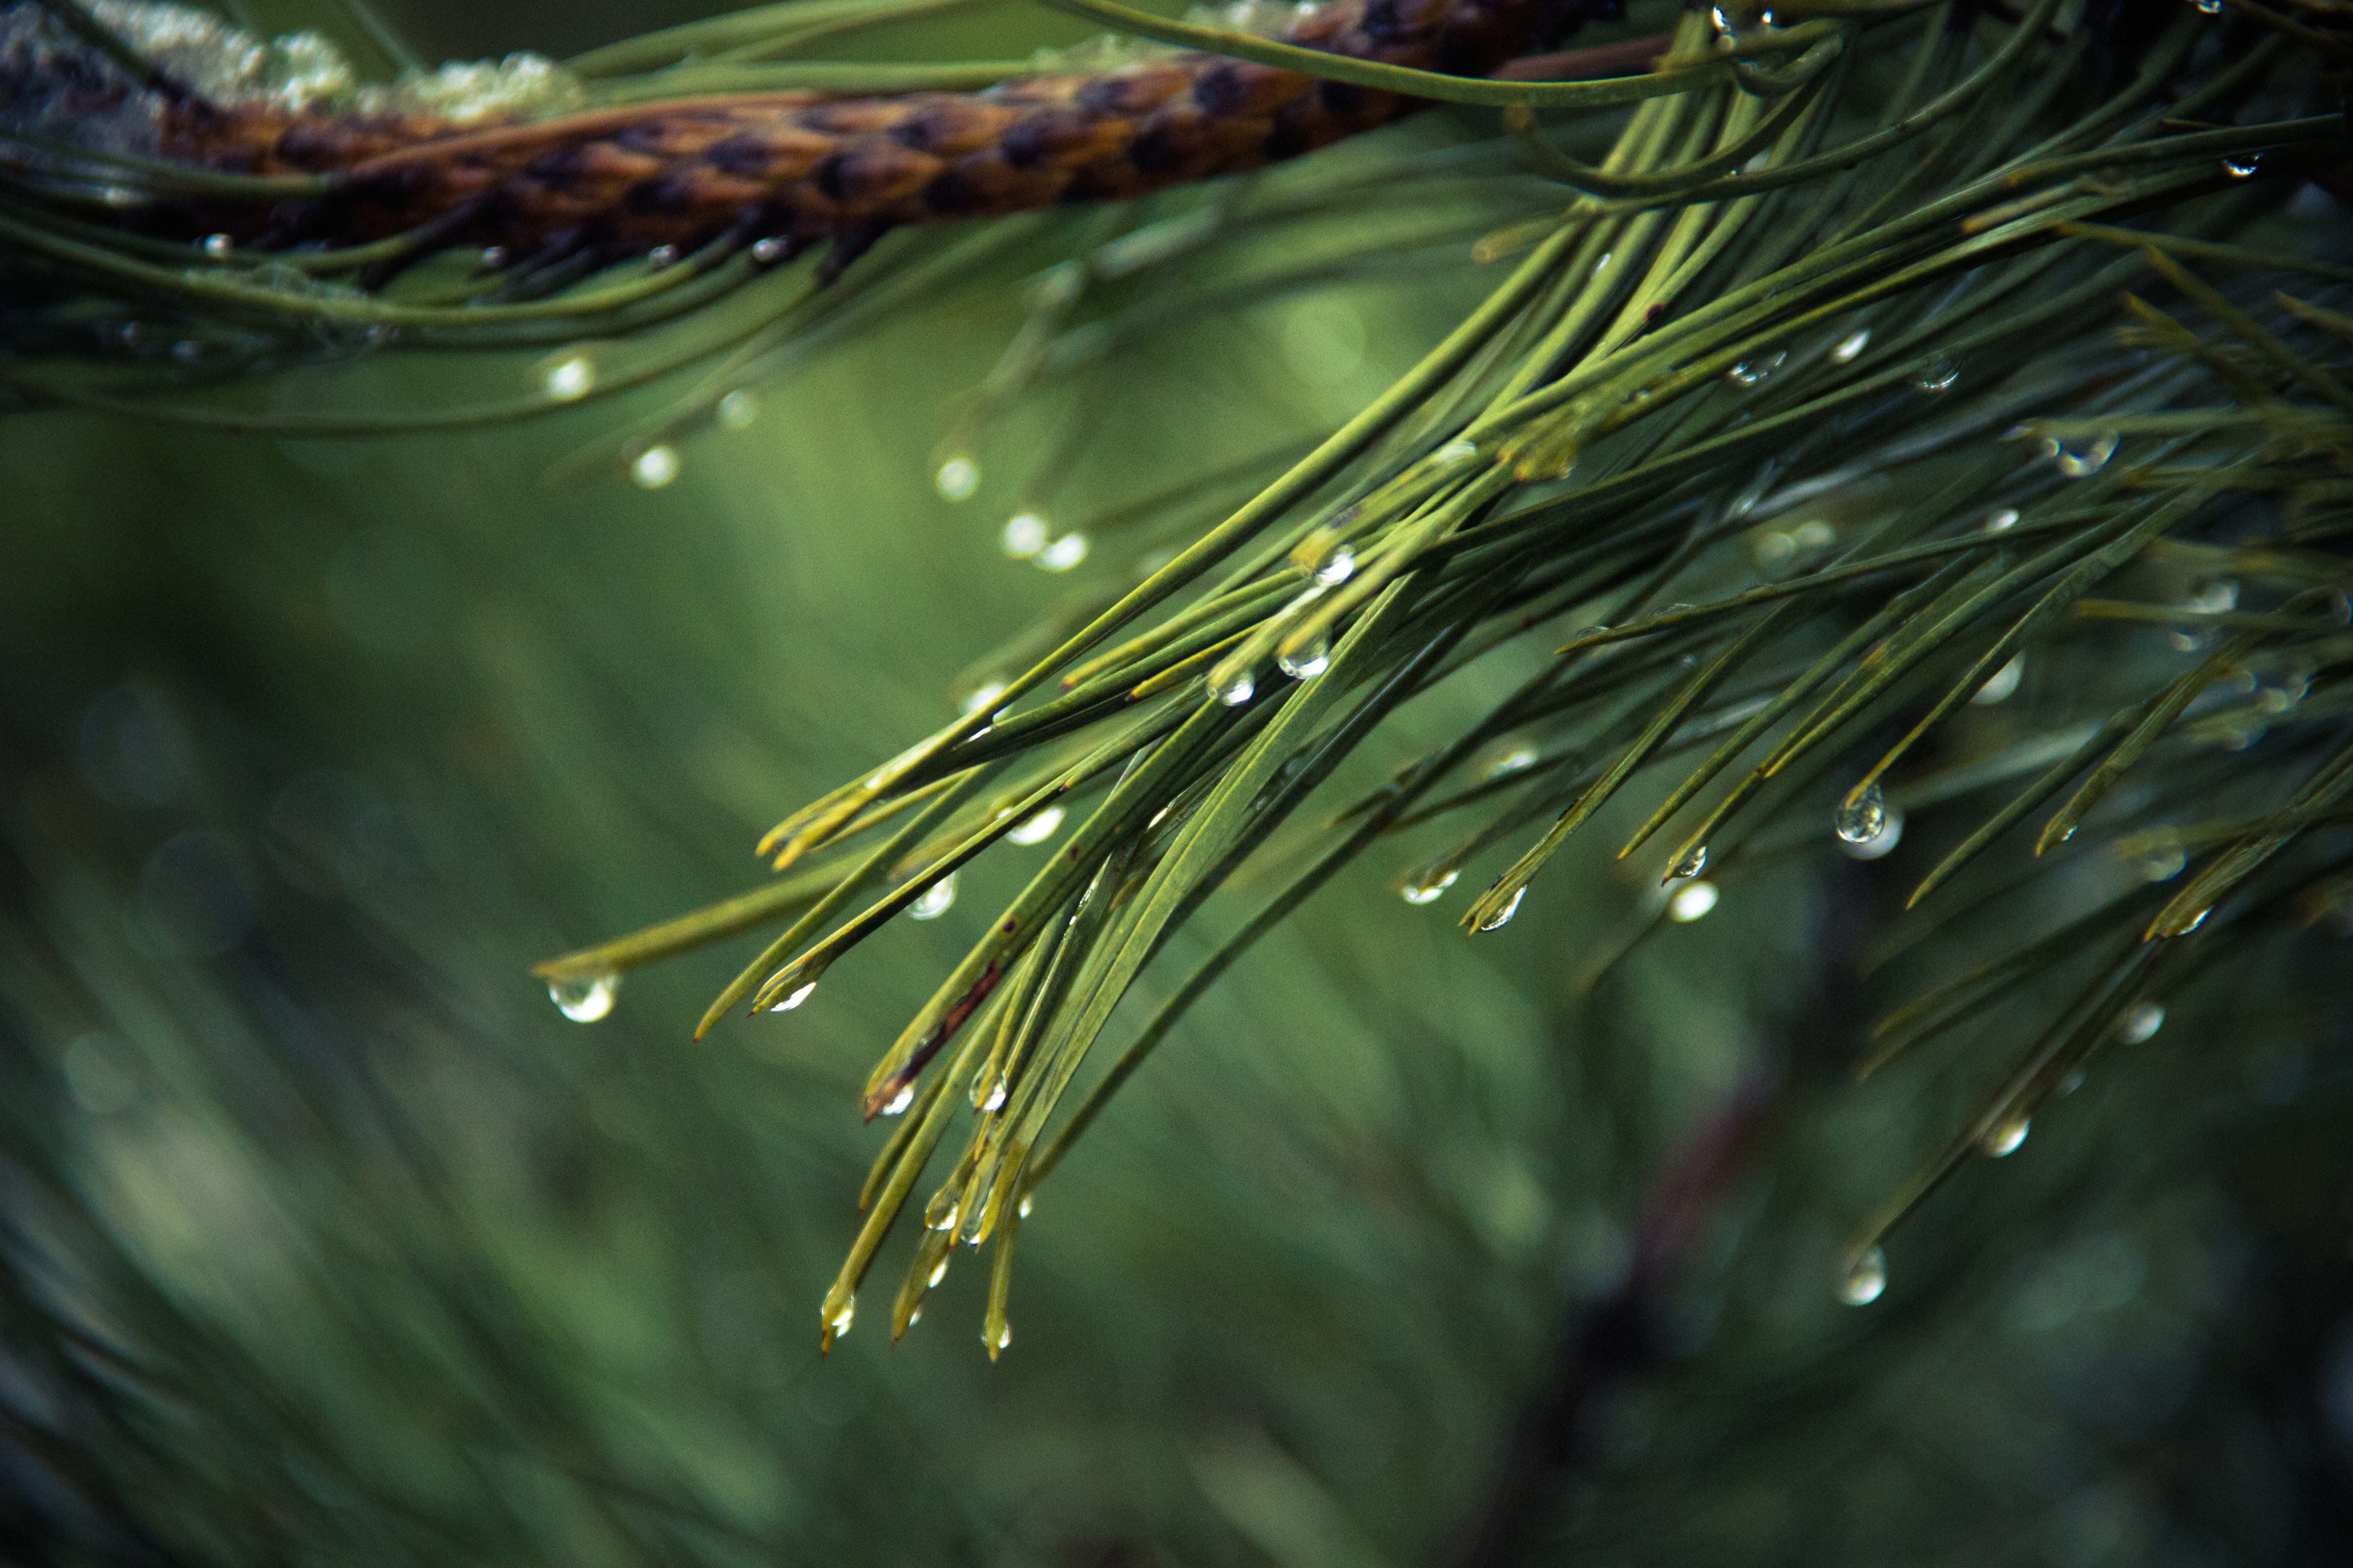 Nature Wallpapers      Pexels      Free Stock Photos Nature wallpaper of nature  raindrops  drops of water  pine